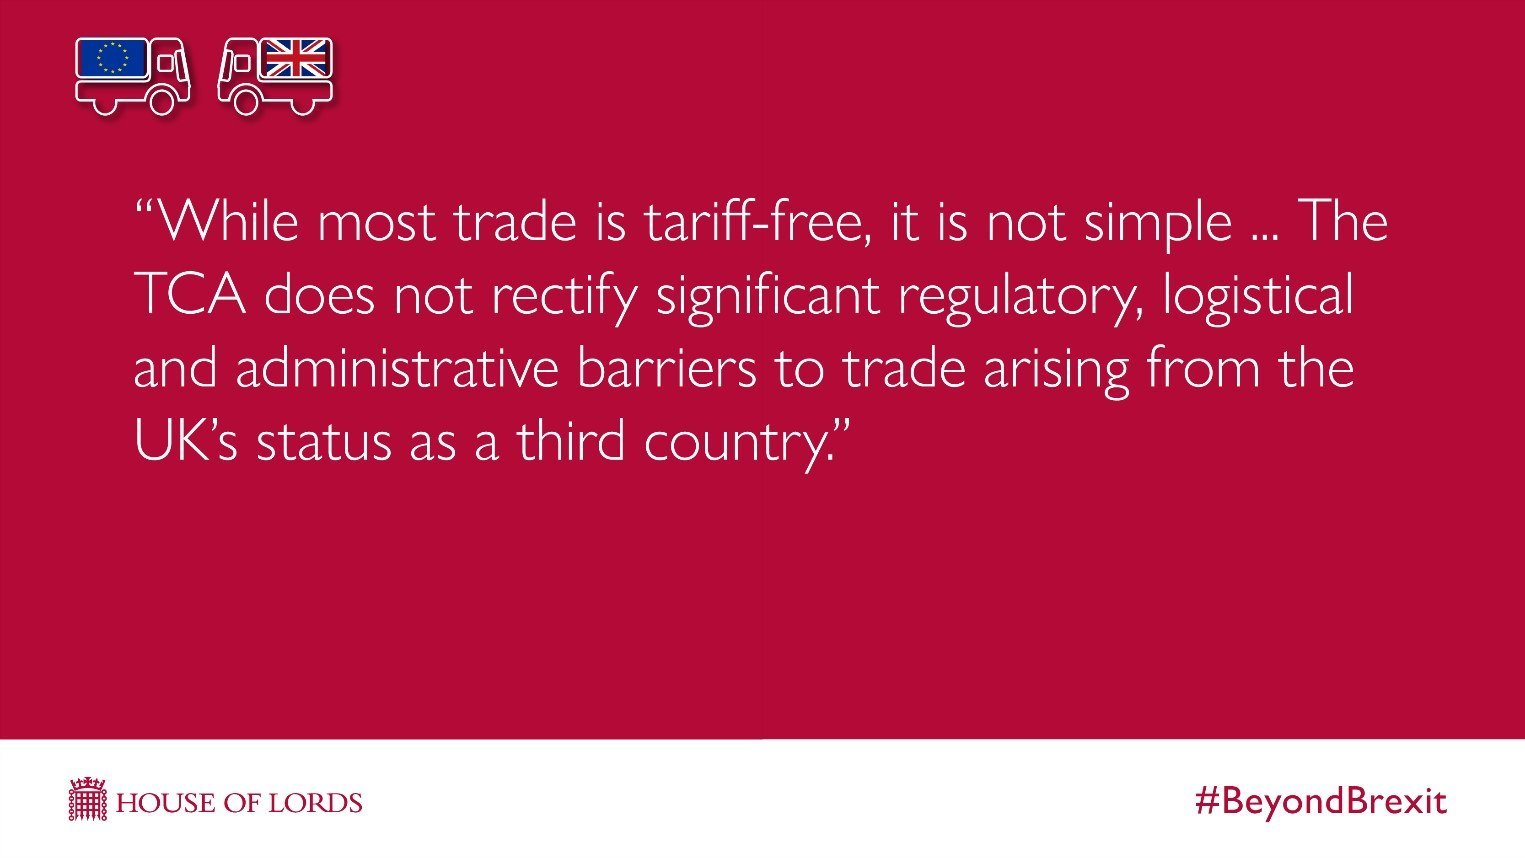 Beyond Brexit trade barriers